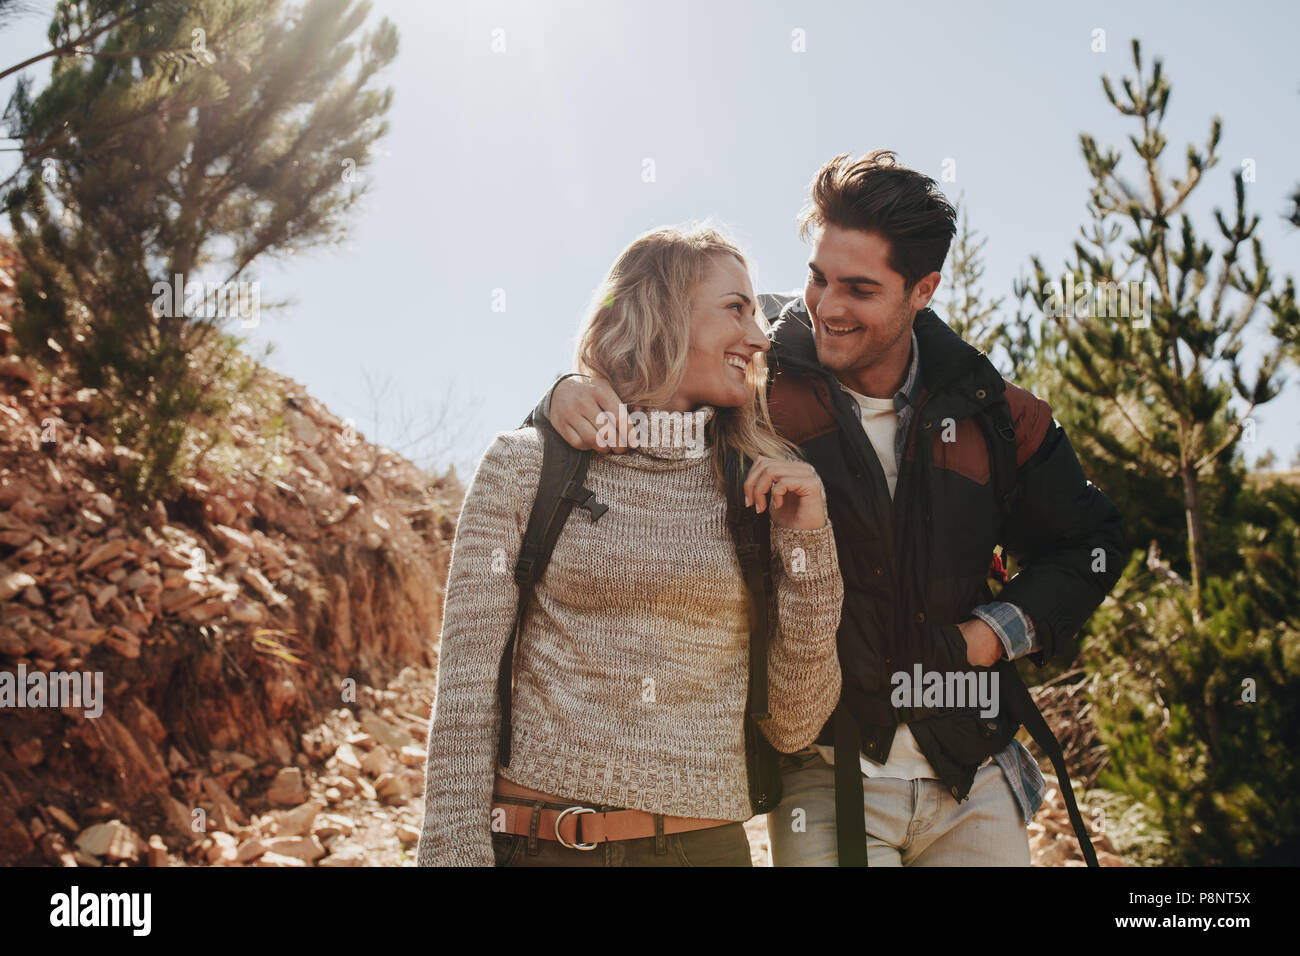 Couple in love on a mountain hike. Man and woman with backpack walking on mountain trail and looking at each other smiling. - Stock Image